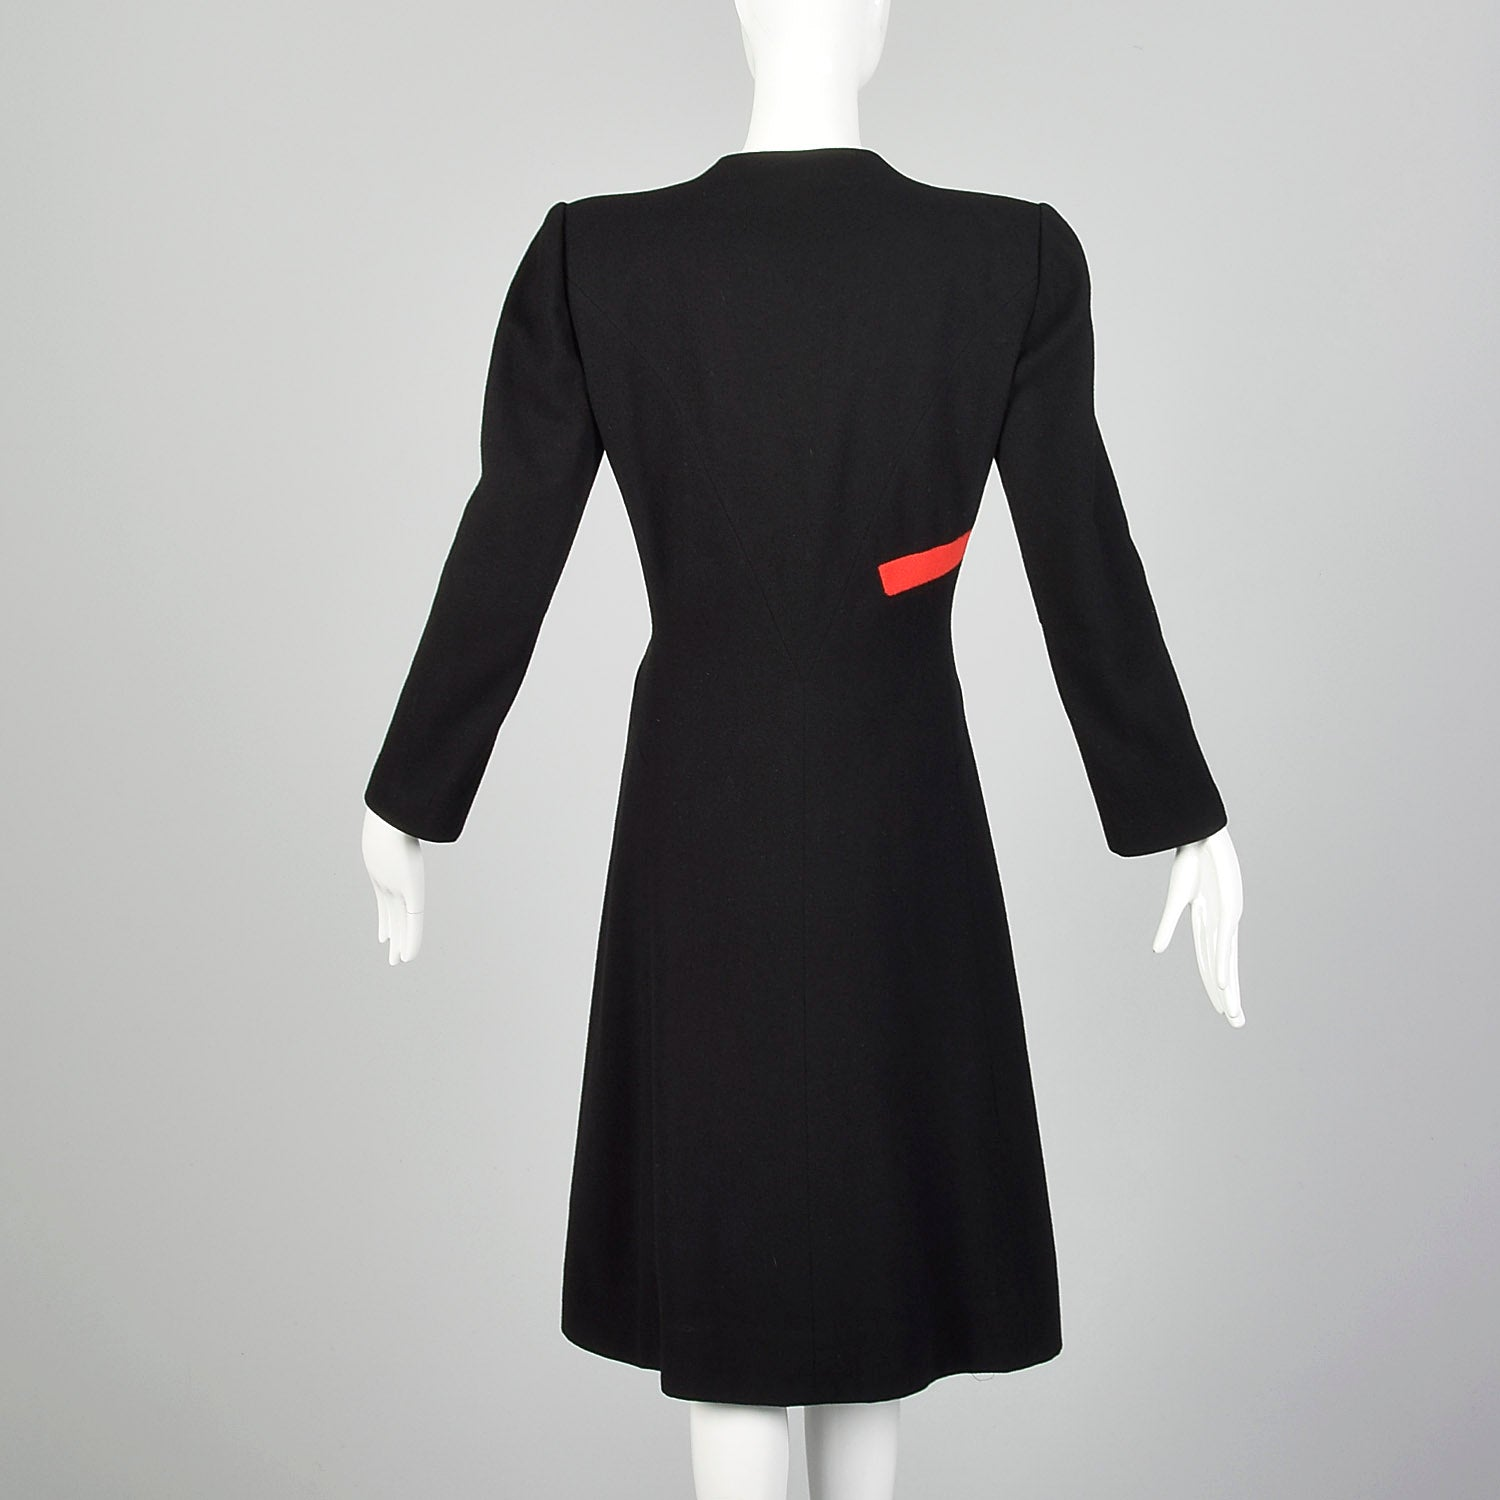 1940s Gilbert Adrian Black Wool Coat with Asymmetric Red Stripe